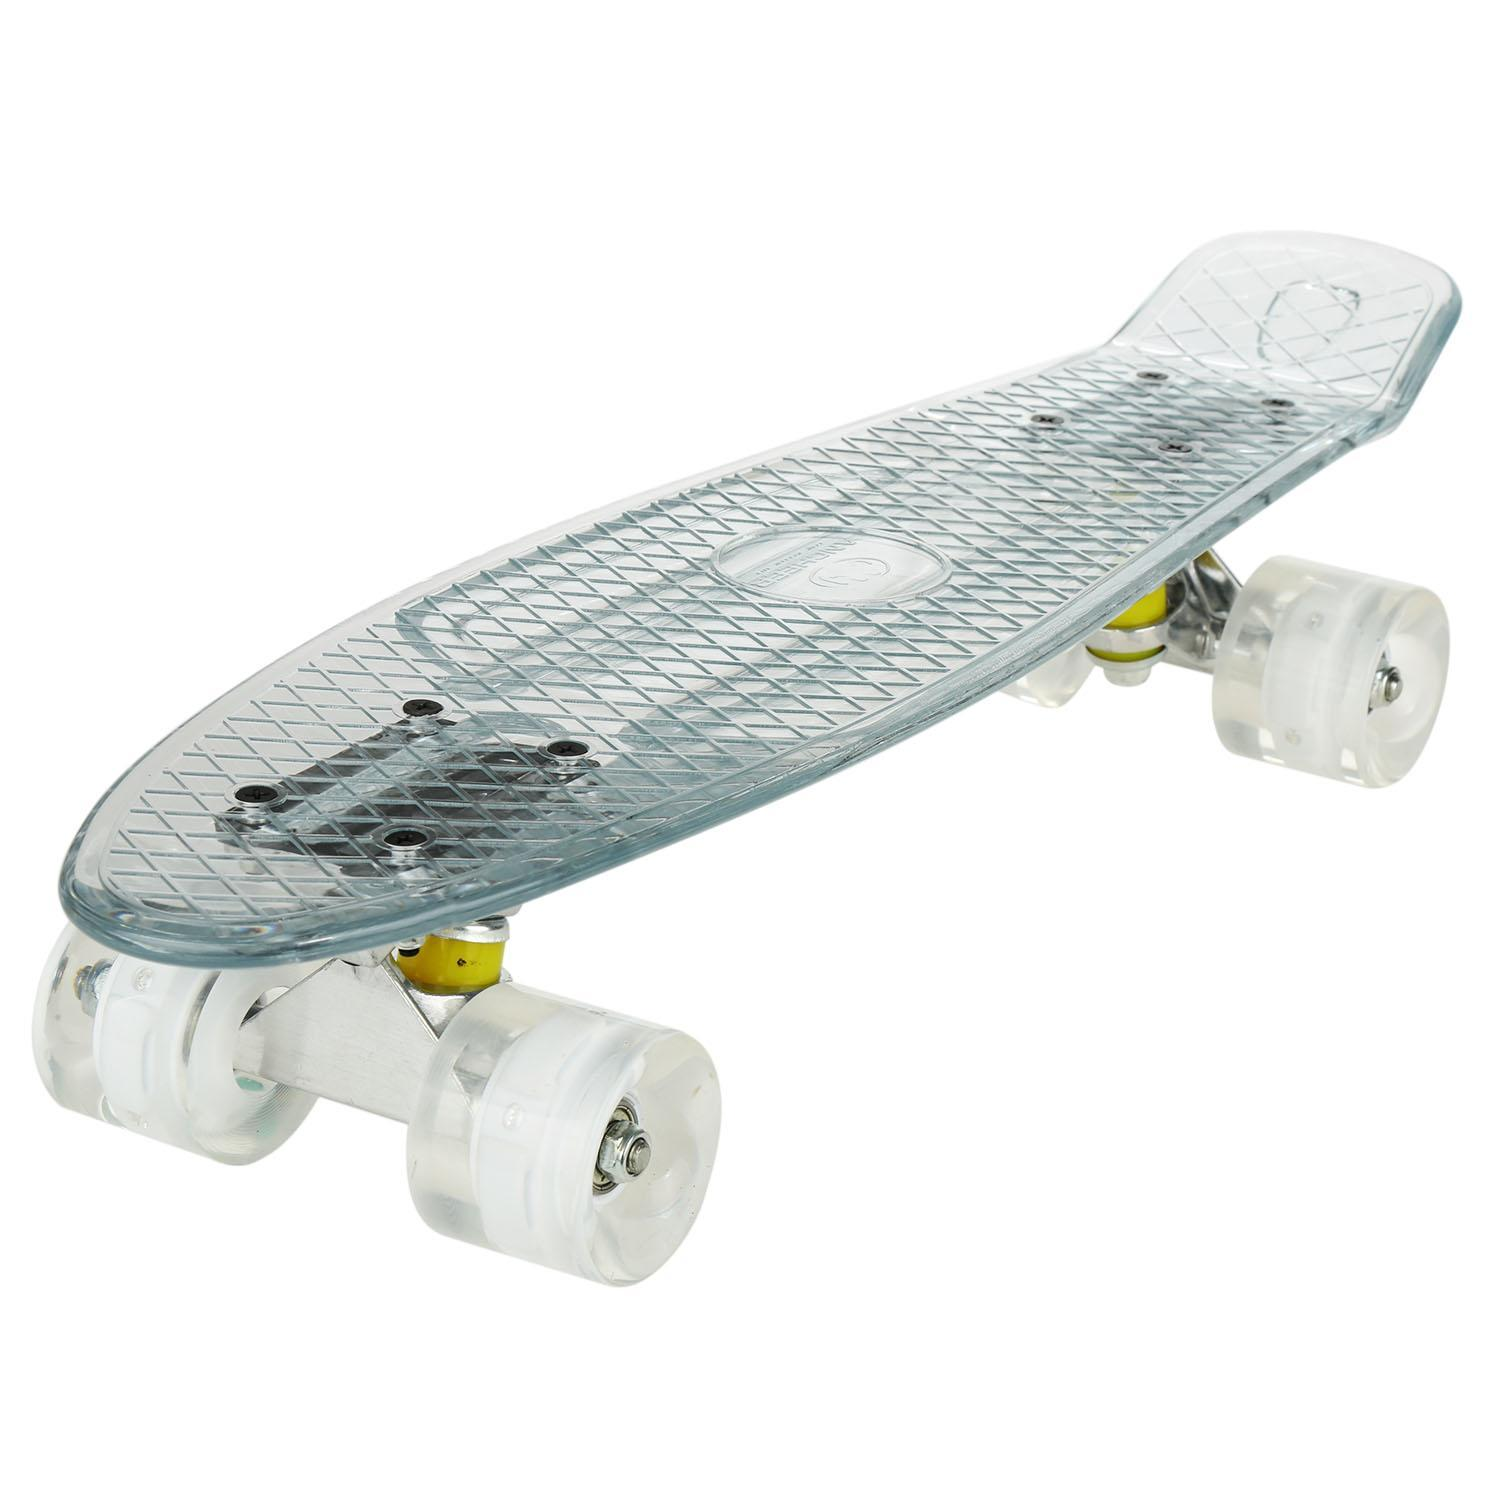 Last Clearance&Sale!!22 Inch Cruiser Crystal Clear Board LED Light Up Wheels Outdoor Complete Deck Skateboard FSBR by